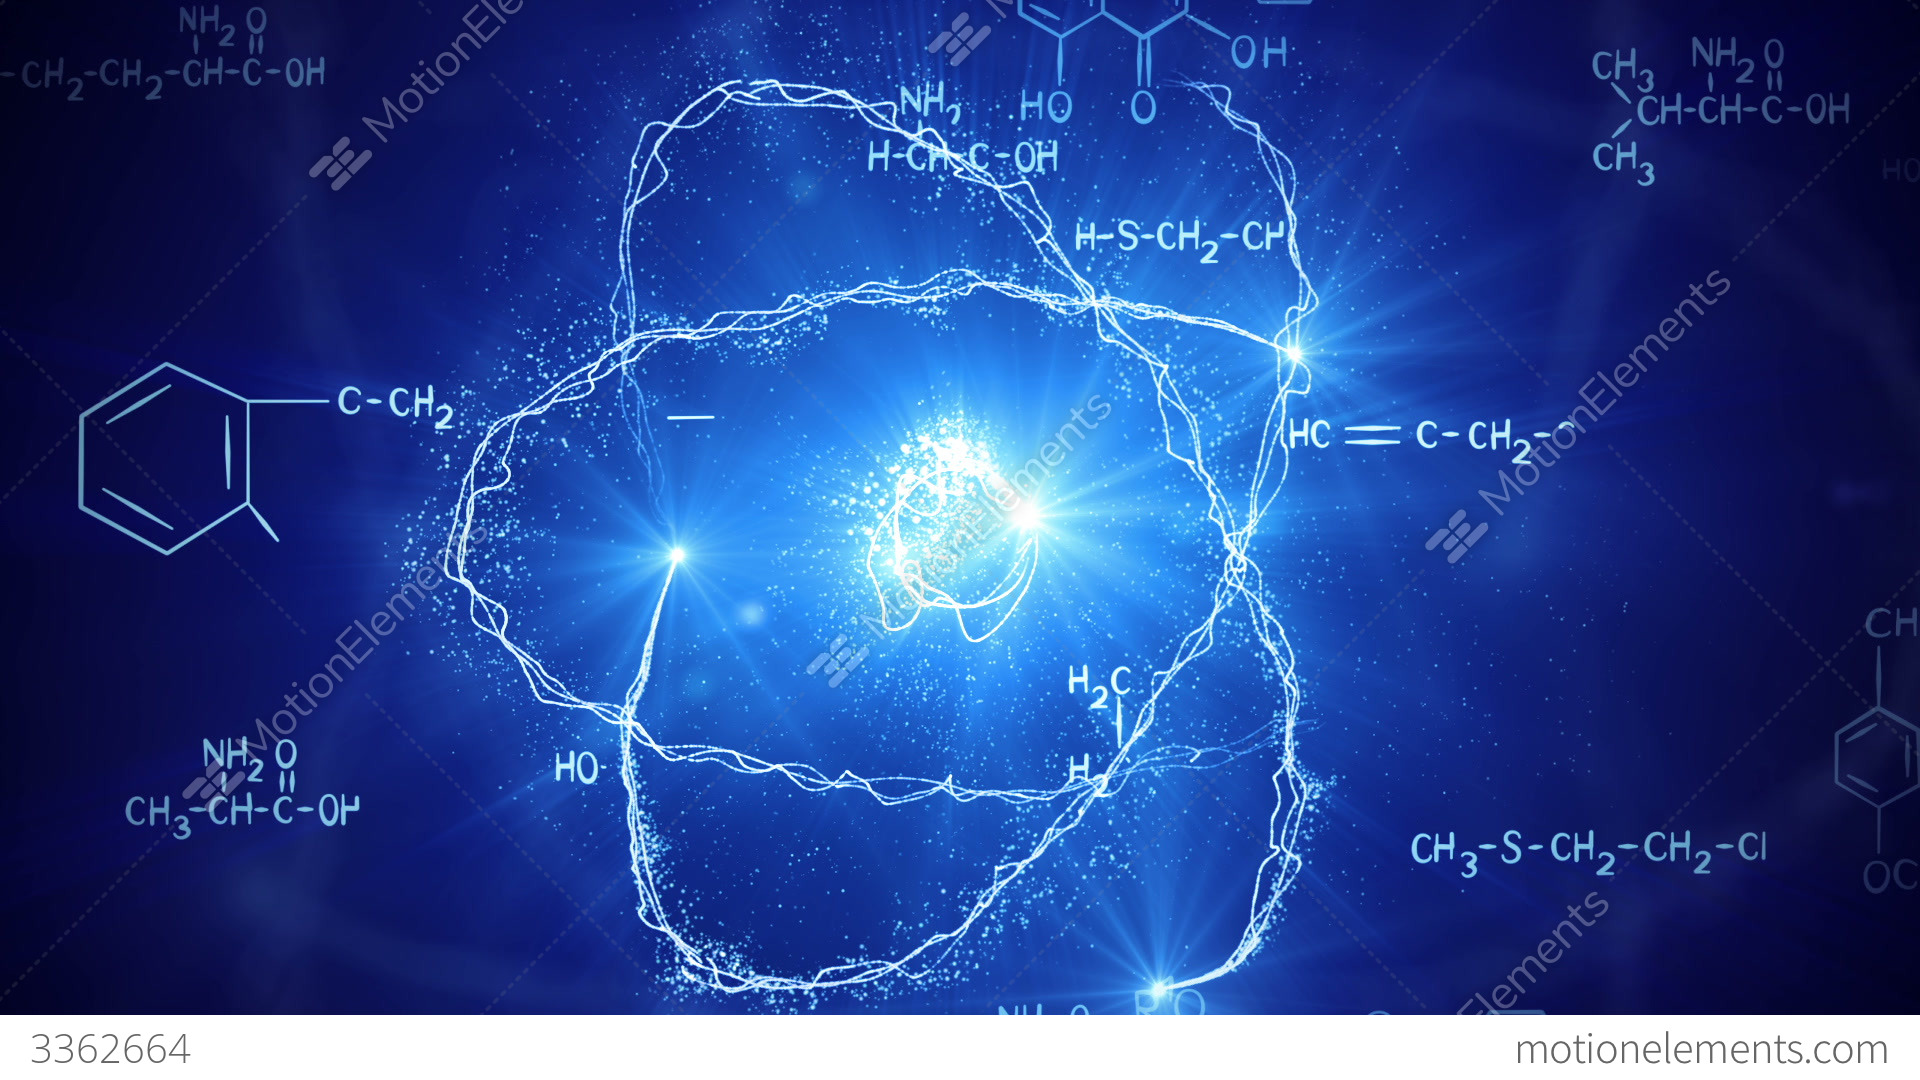 Free Animated Wallpaper Backgrounds Shiny Atom Model And Chemistry Formulas Loopable Stock